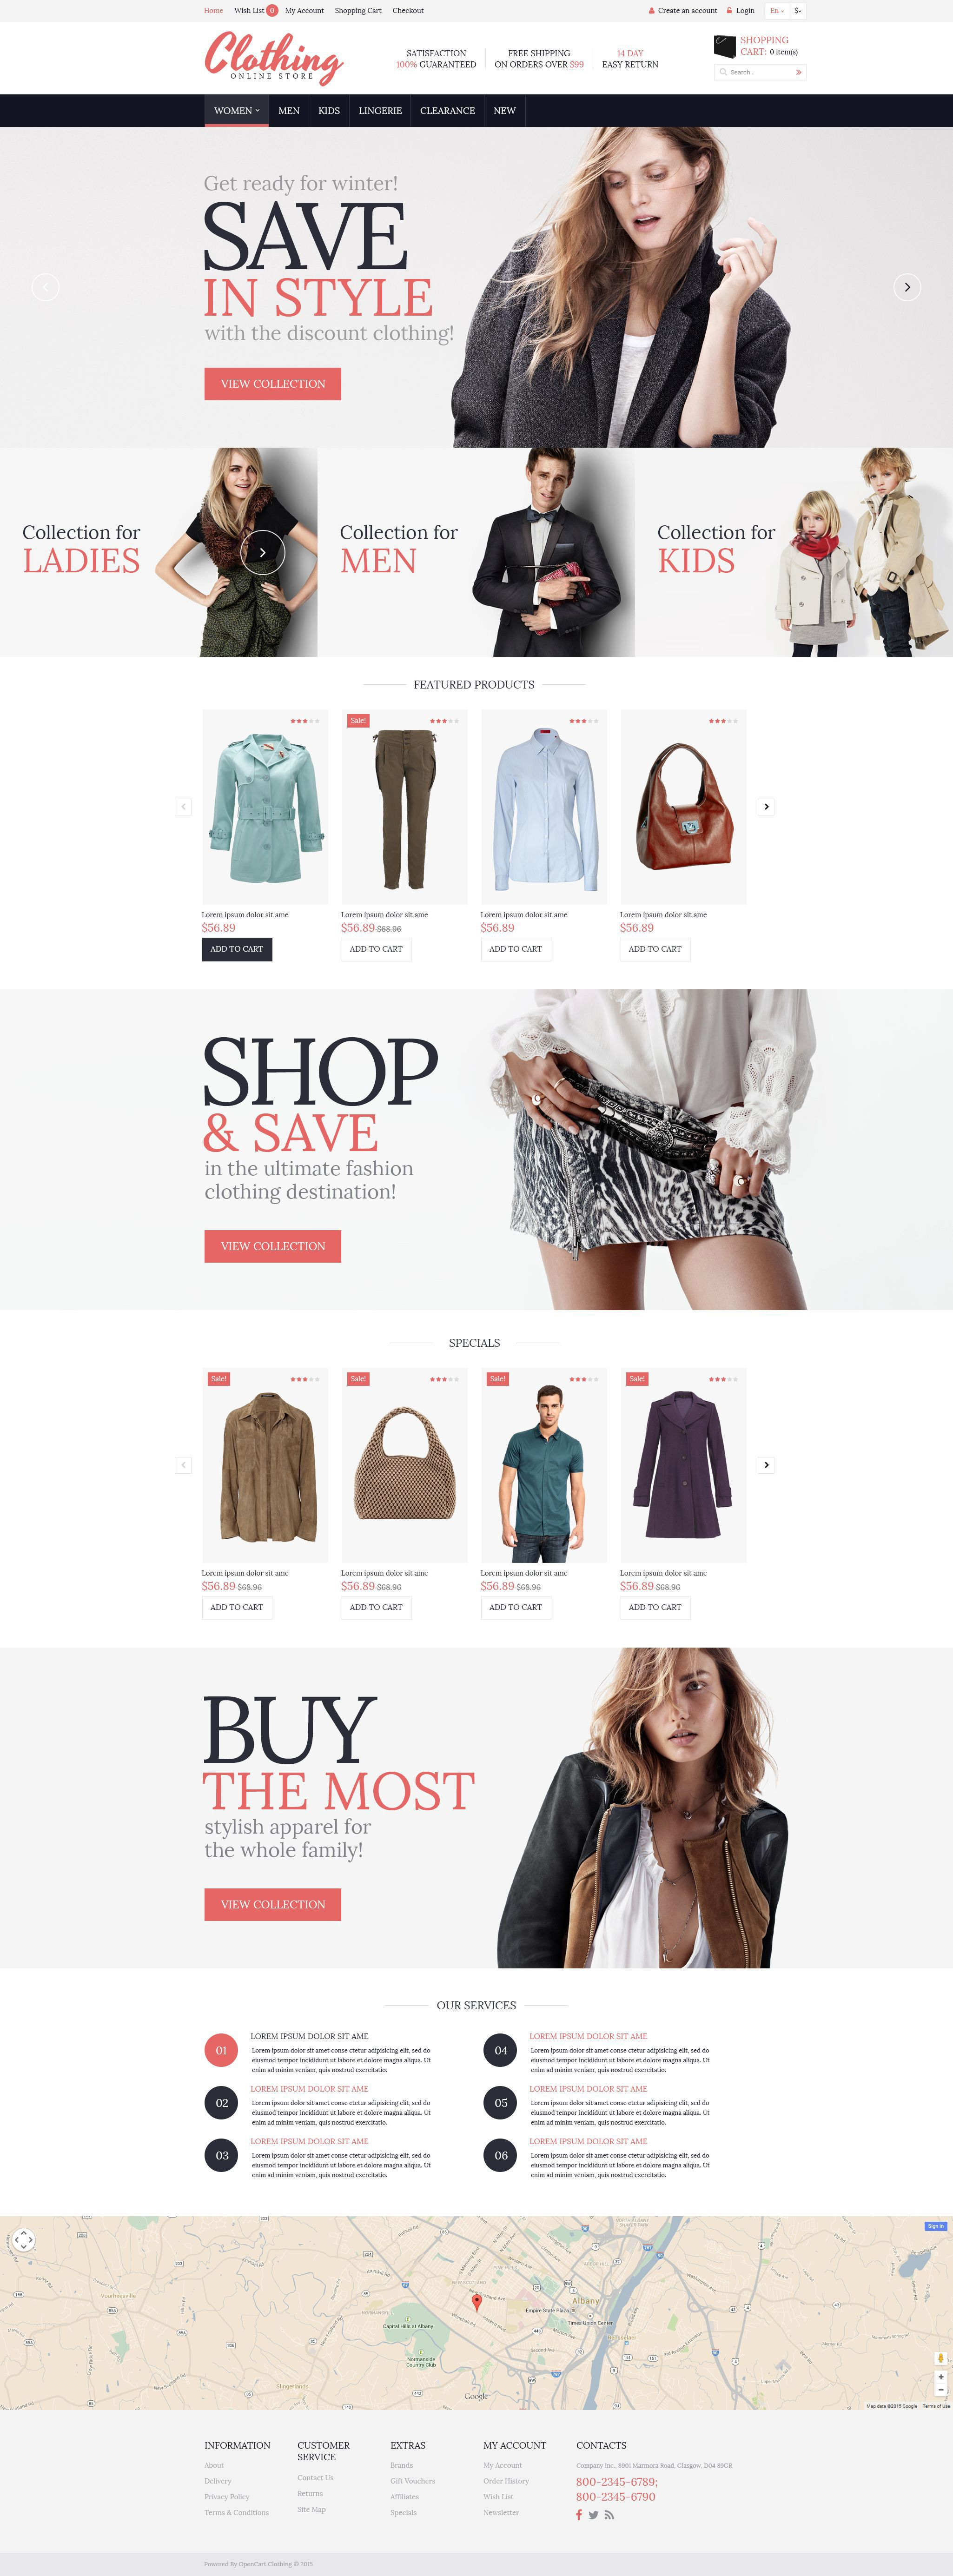 Website To Design Clothes For Free   Clothing For Everyone Opencart Template New Website Templates